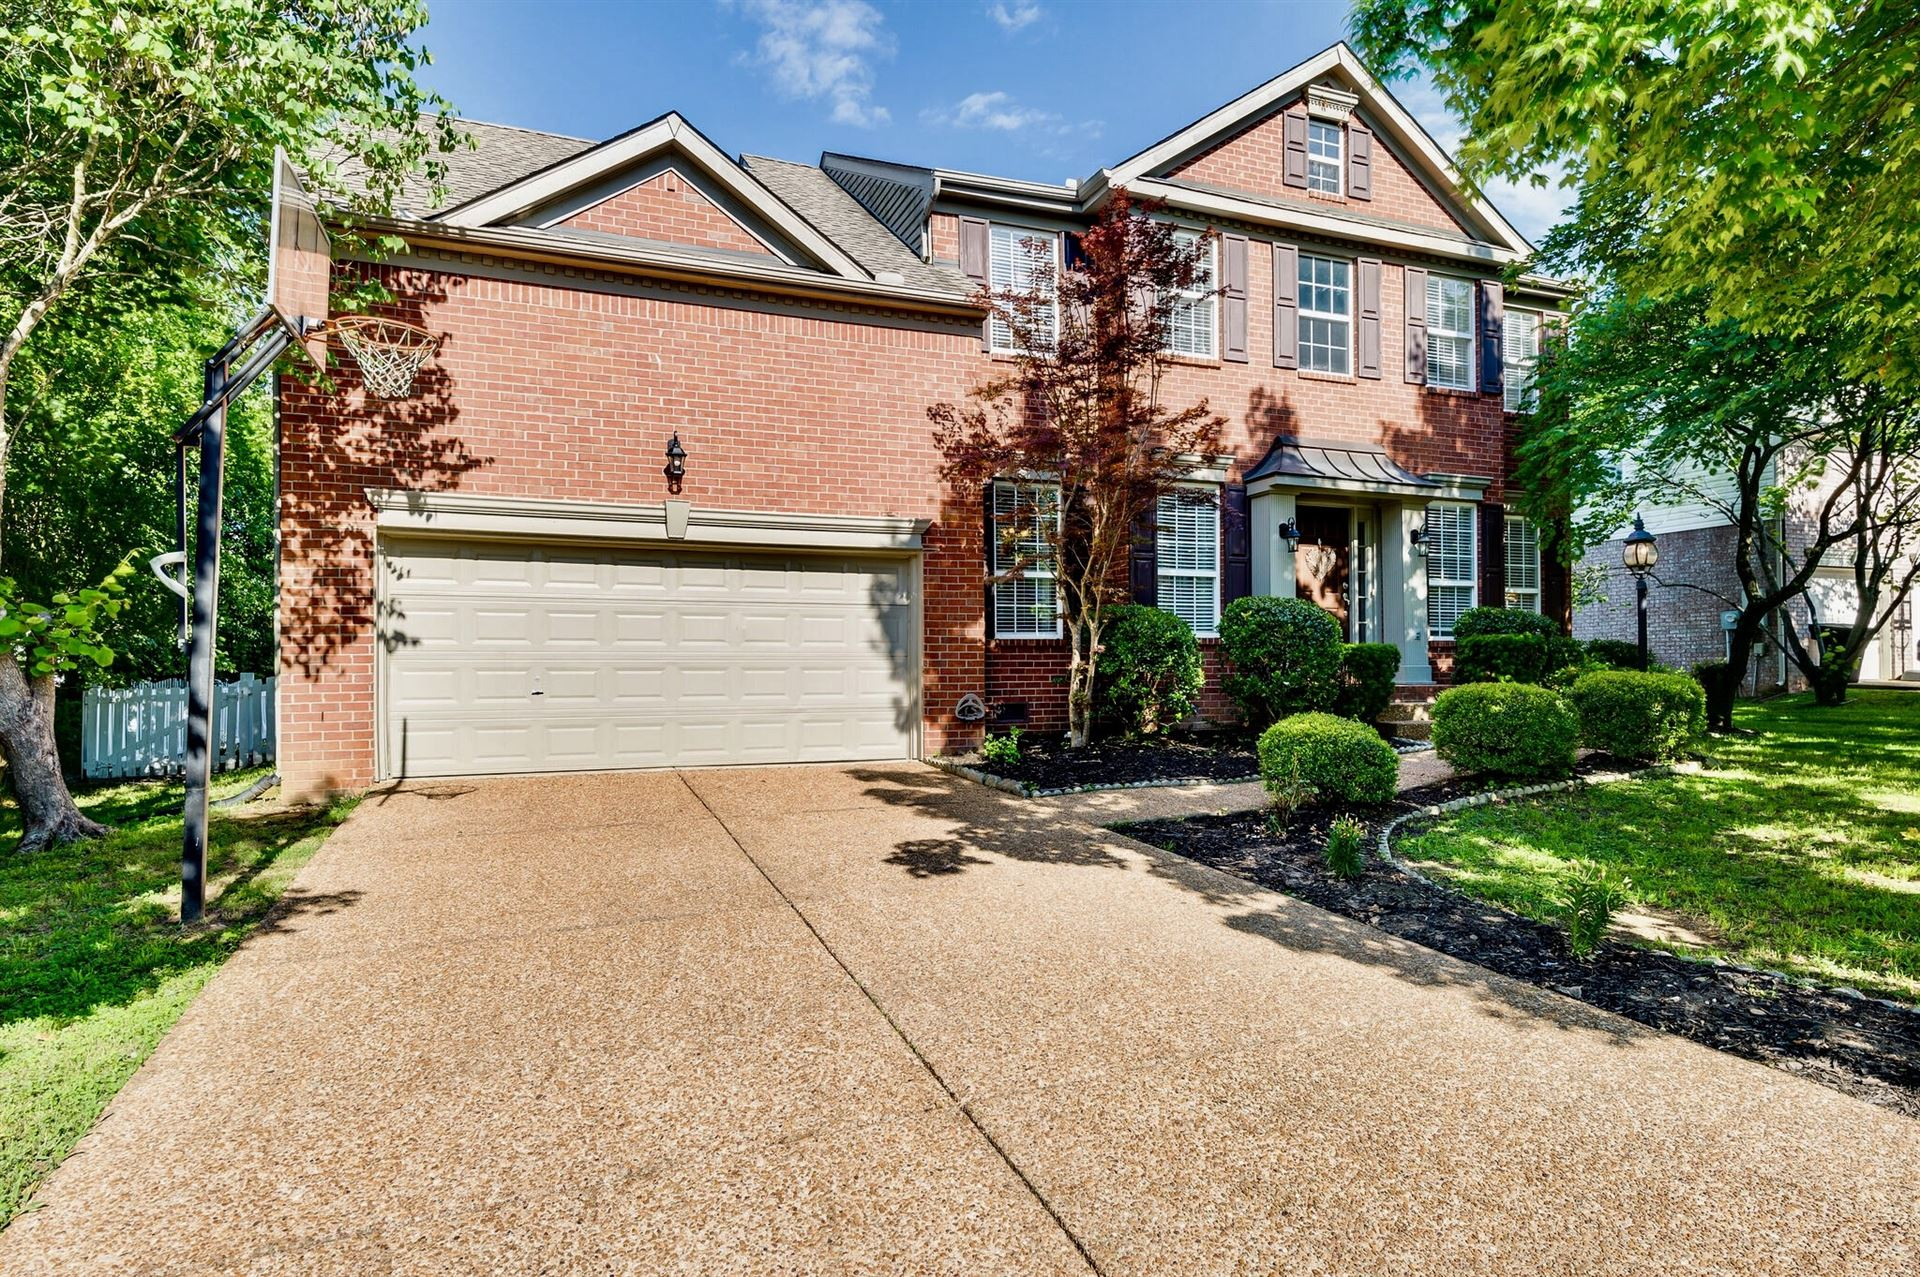 Photo of 805 Founders Pointe Blvd, Franklin, TN 37064 (MLS # 2155403)